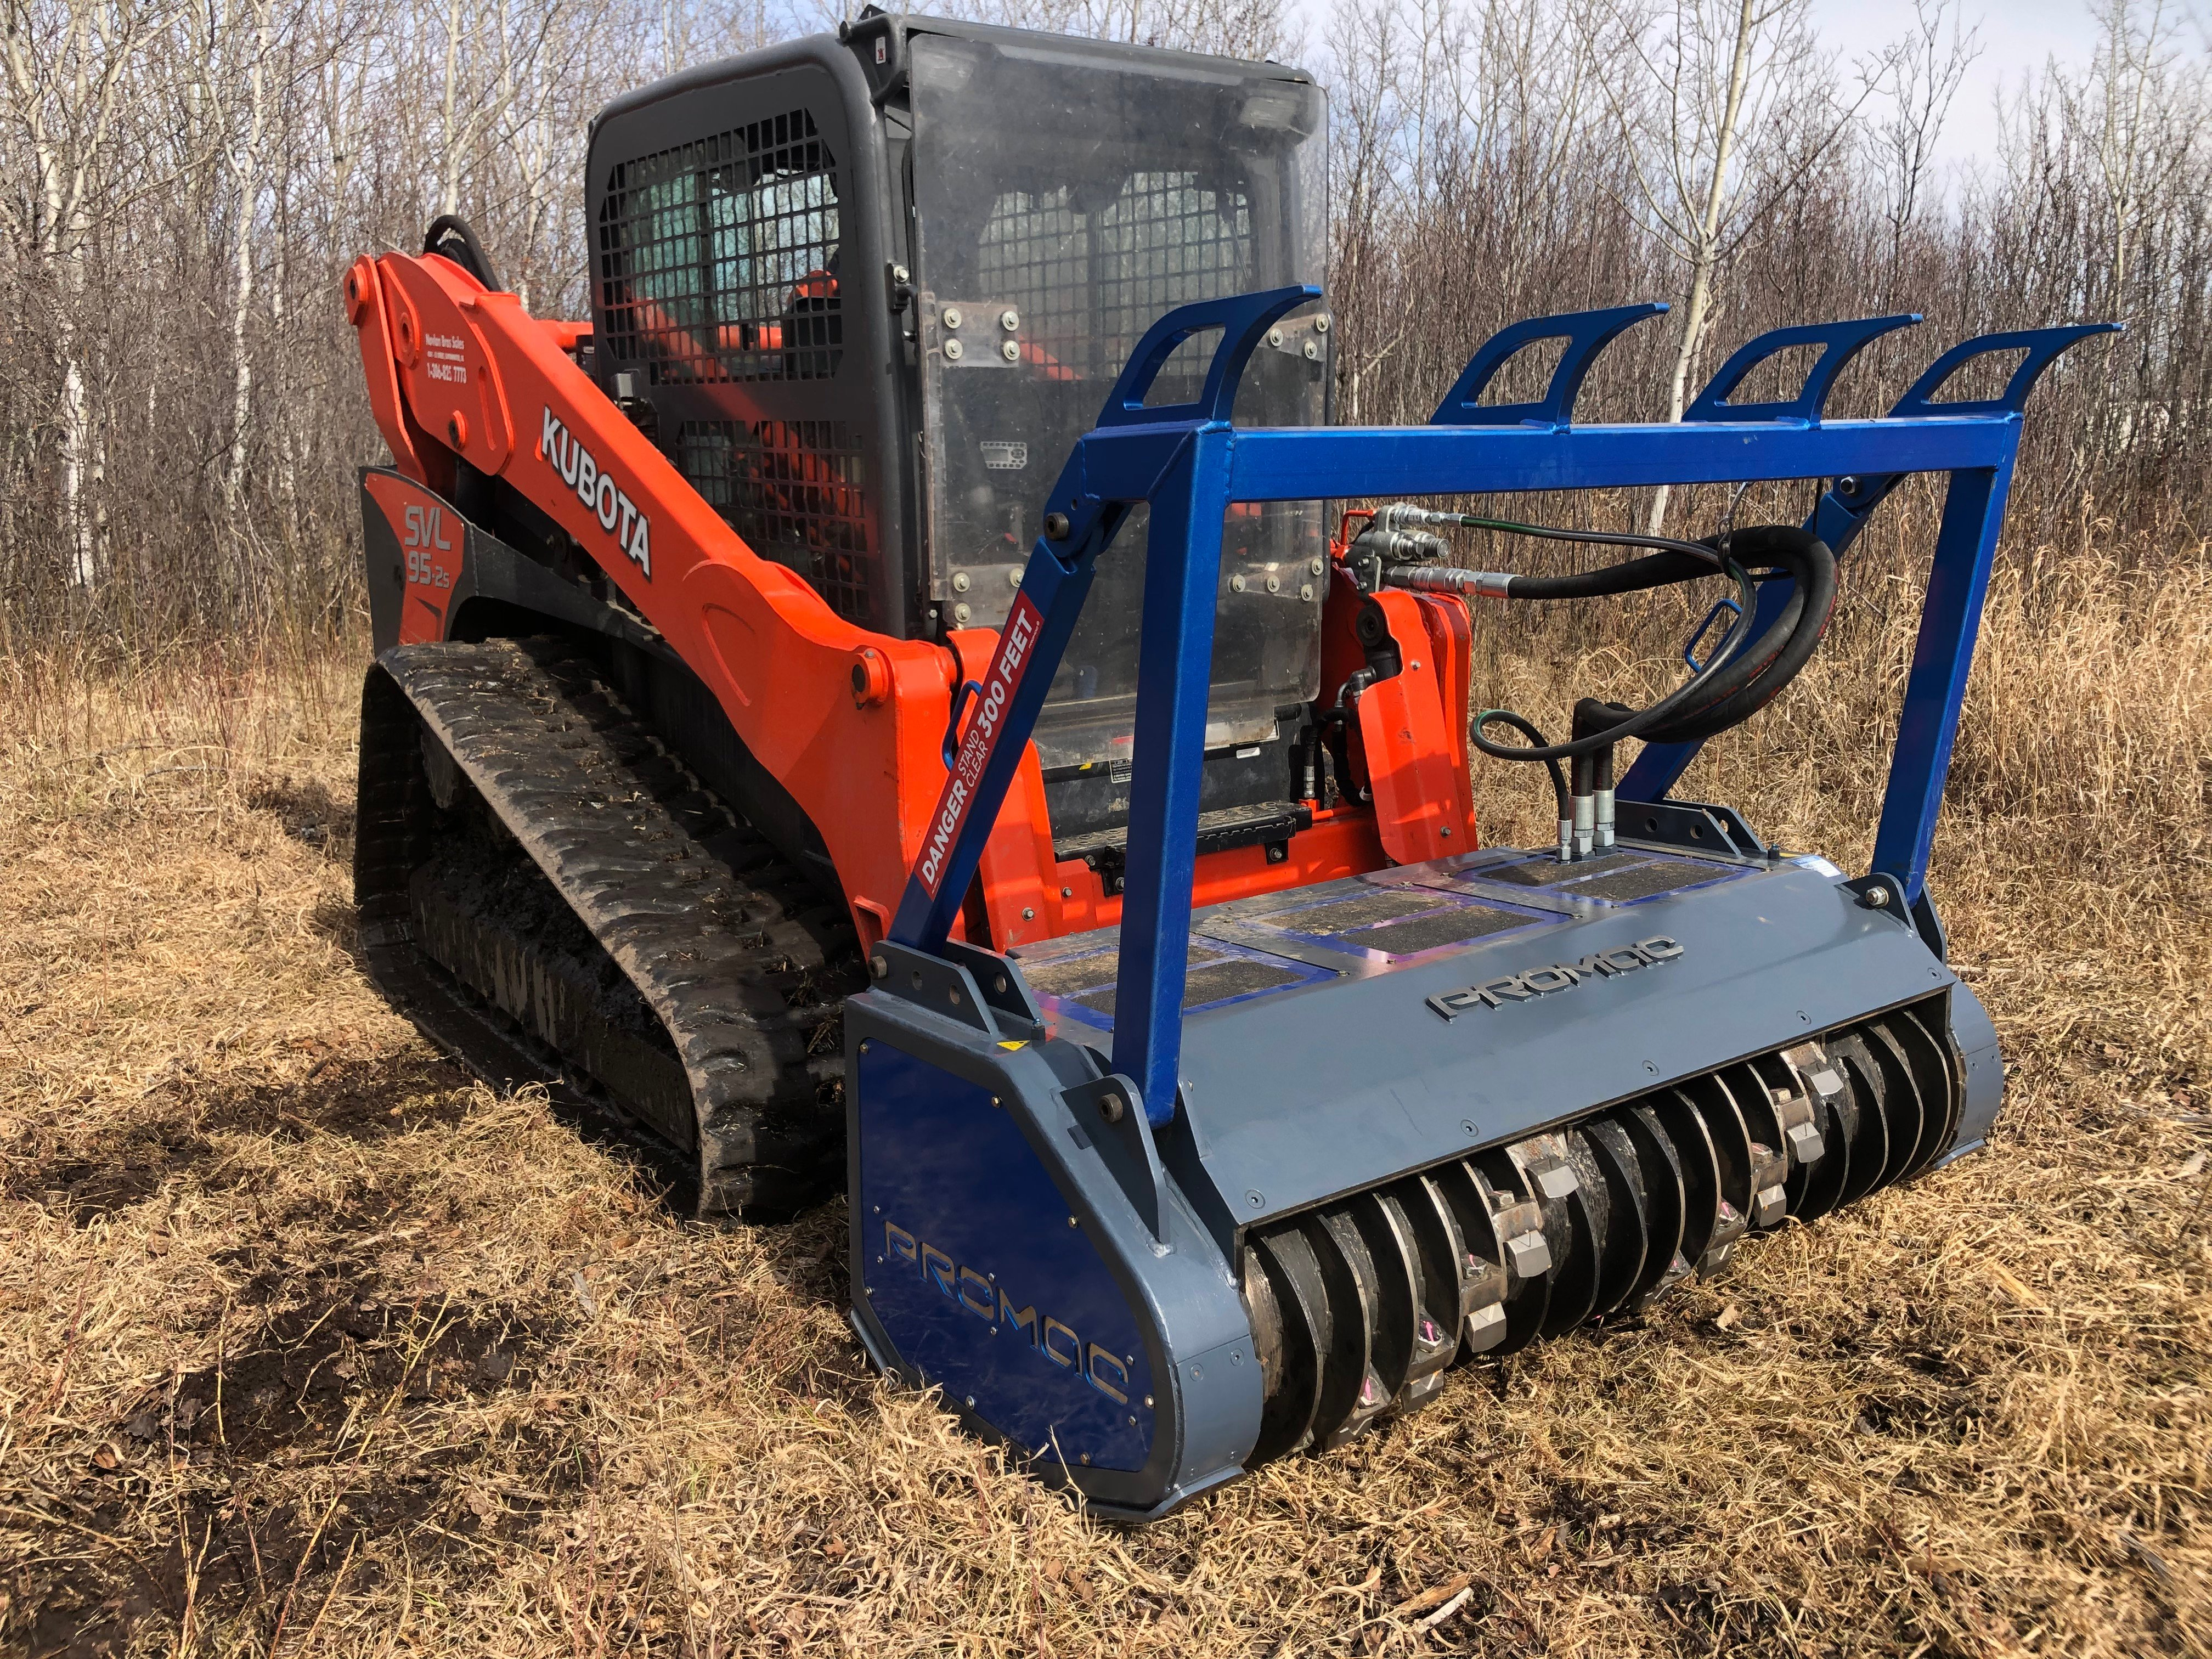 Outstanding performance from the HSS 60 mulcher when paired  with the high flow Kubota SVL95.